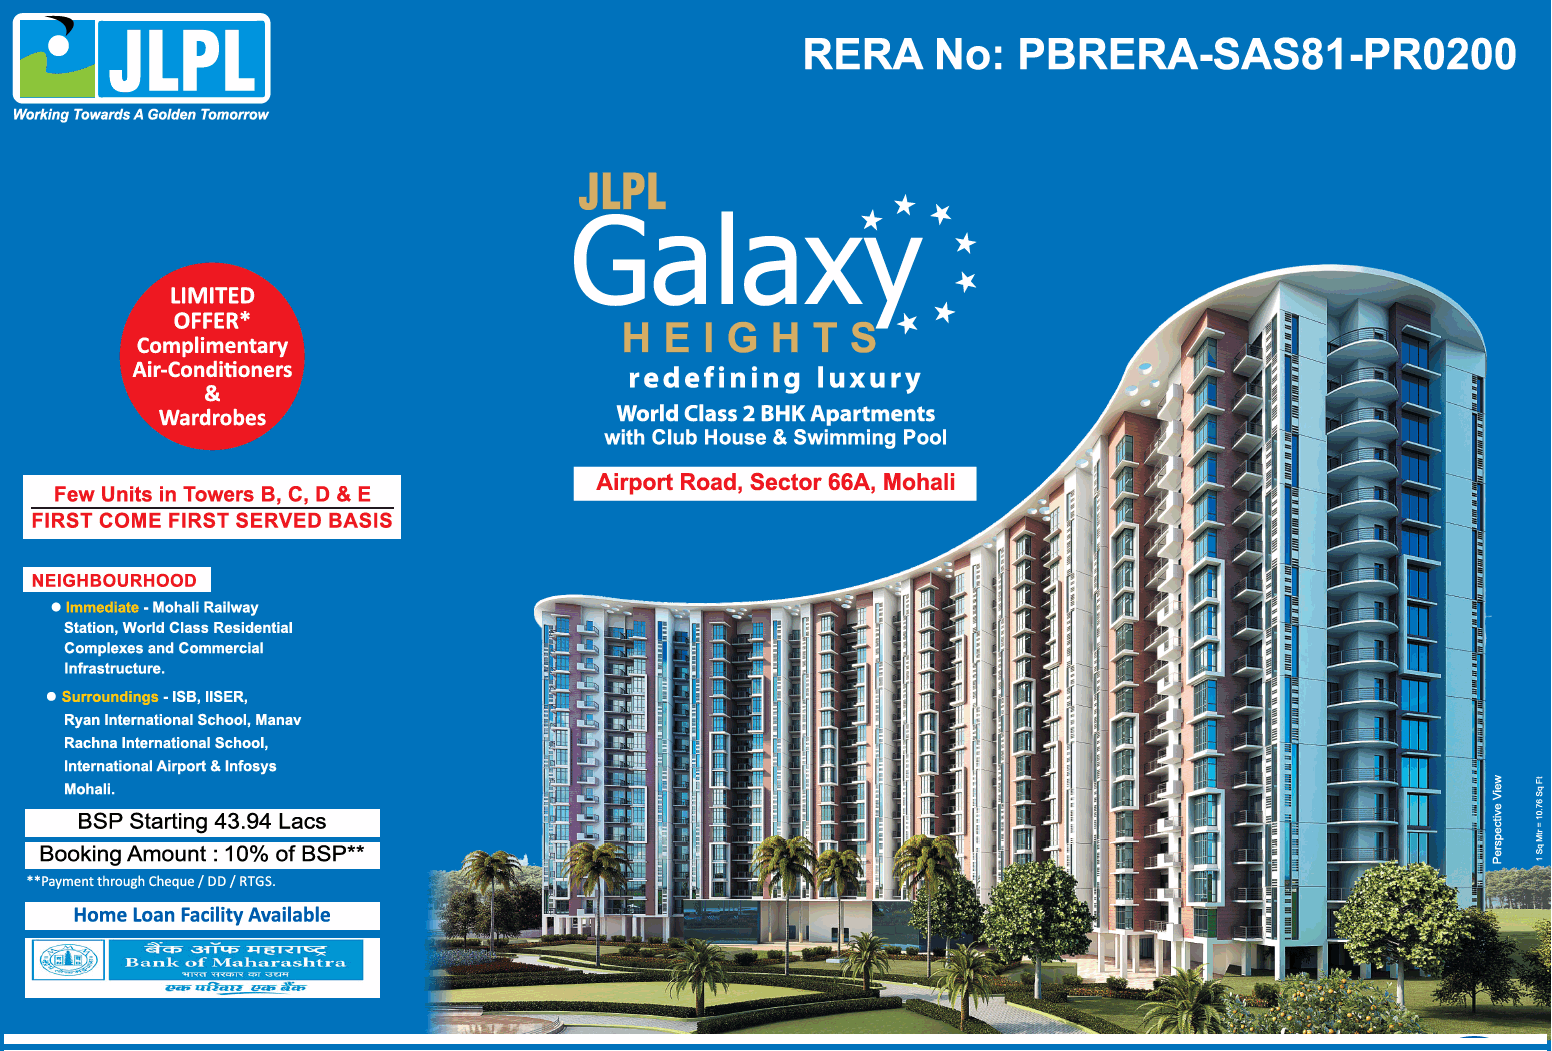 JLPL Galaxy Heights presenting world class 2 bhk apartments in Mohali